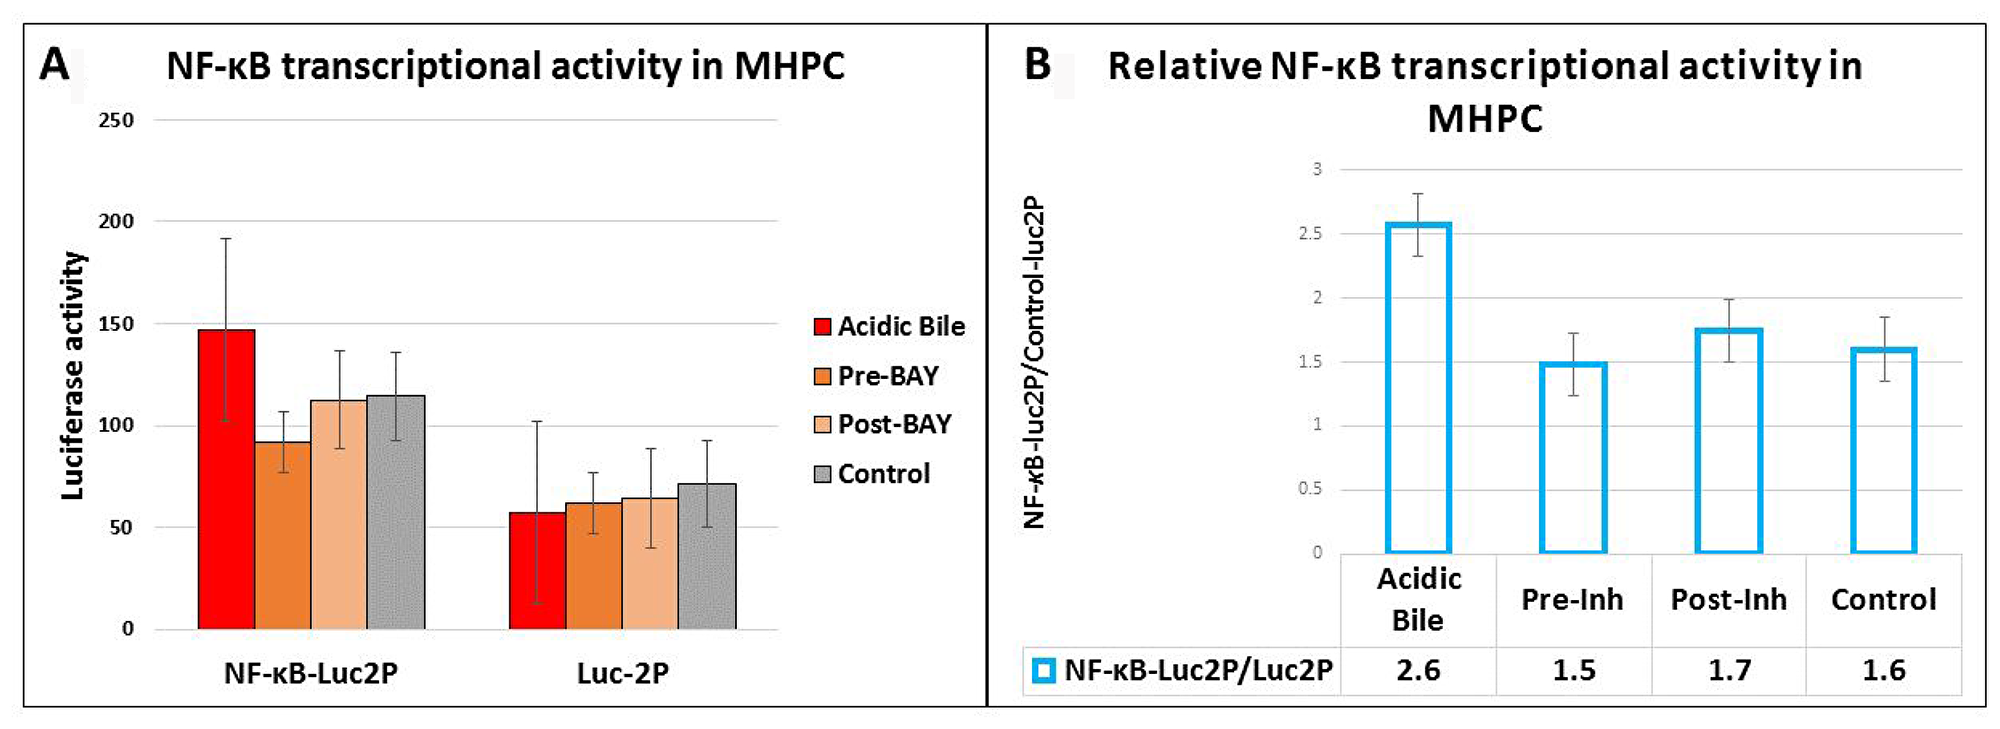 Luciferase assay demonstrates that either pre- or post-application of BAY 11-7082 prevents the acidic bile-induced NF-κB transcriptional activity in MHPC.